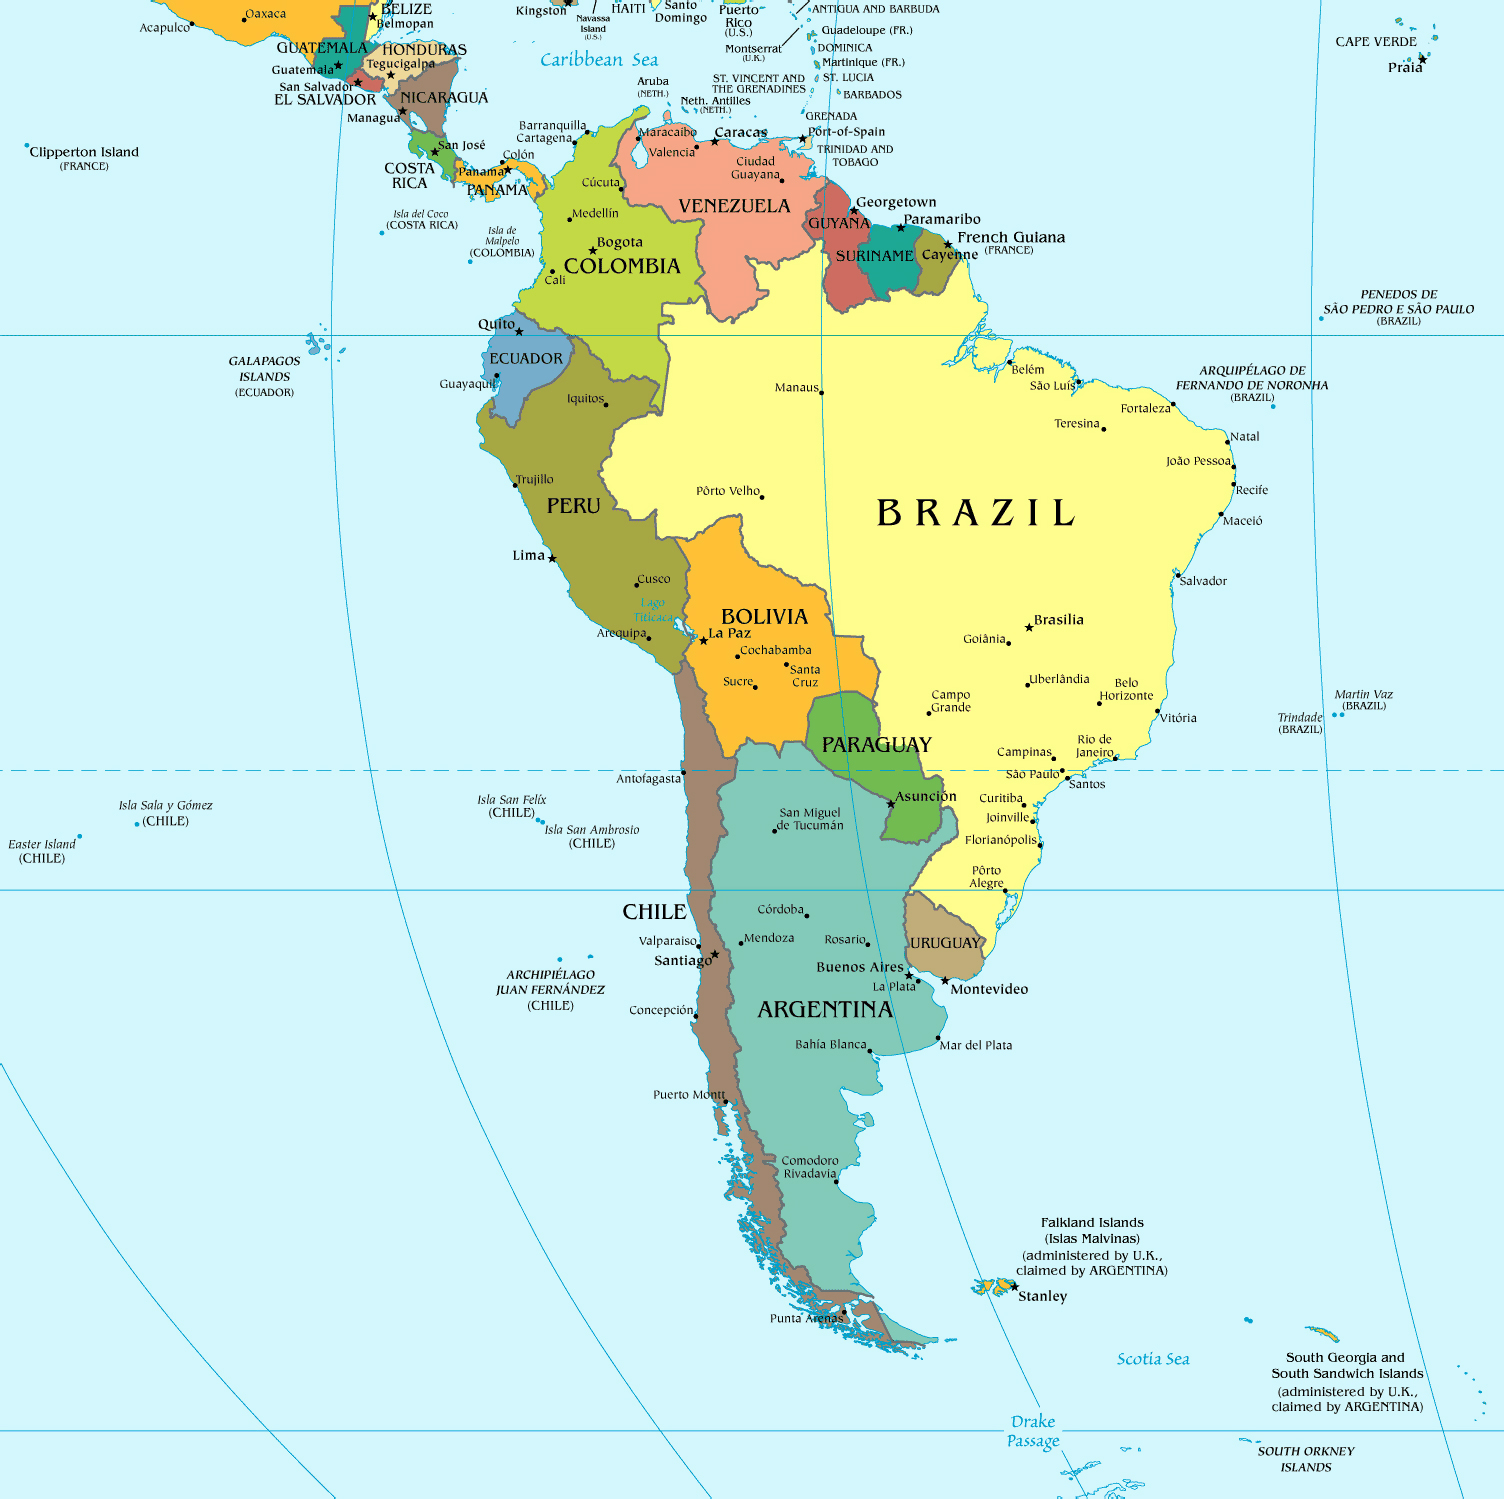 South America Political Map South America Mapsland Maps Of - South america map brazil